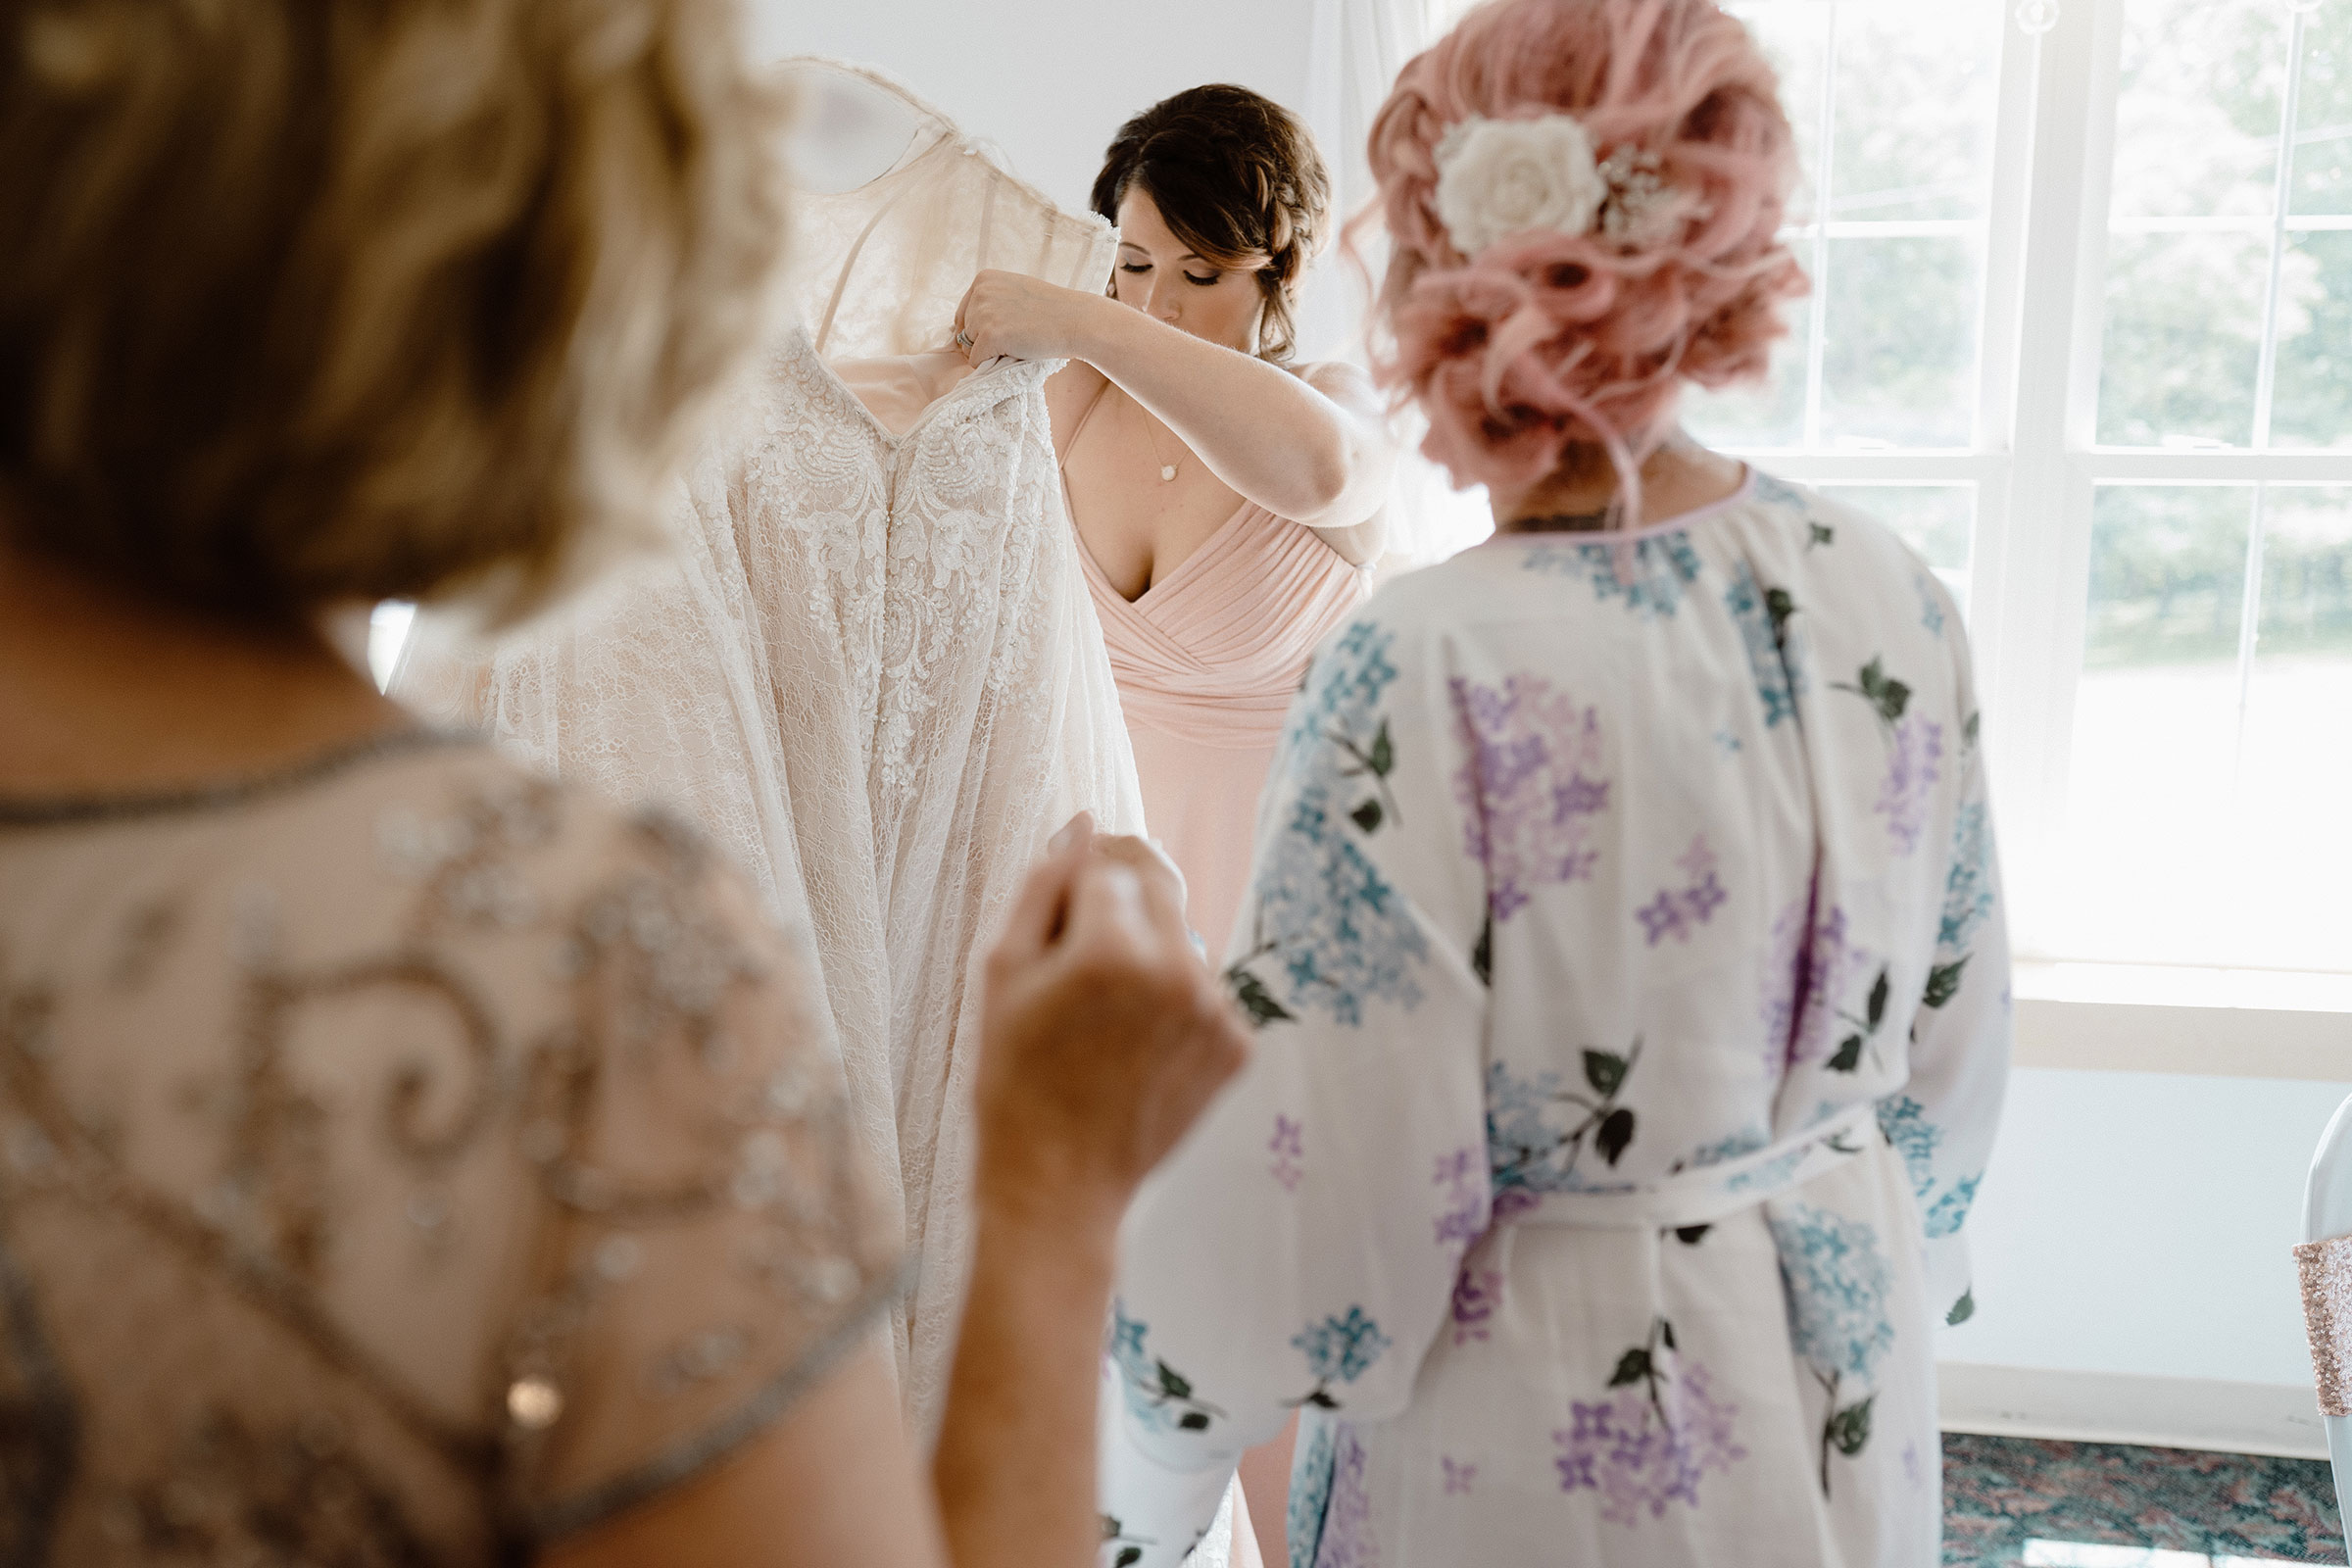 sister-getting-dress-ready-for-bride-wedding-summerset-winery-indianola-iowa-raelyn-ramey-photography.jpg